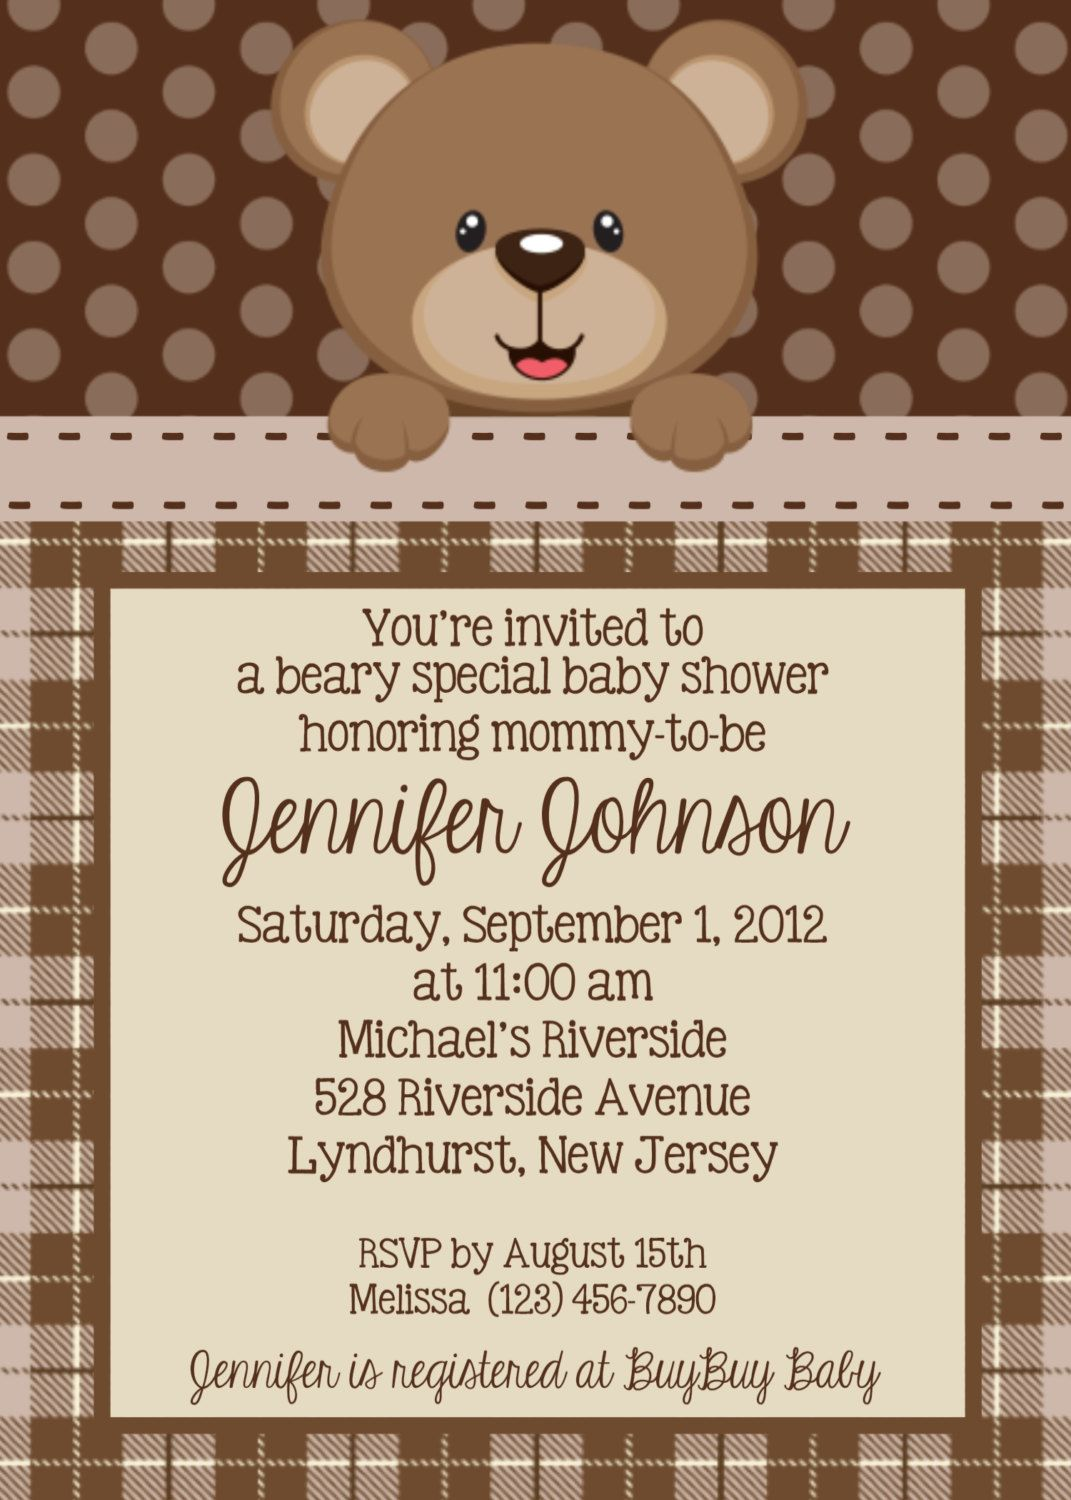 Teddy bear invitation personalized custom teddy bear baby shower teddy bear invitation personalized custom teddy bear baby shower birthday invitation print your own filmwisefo Choice Image